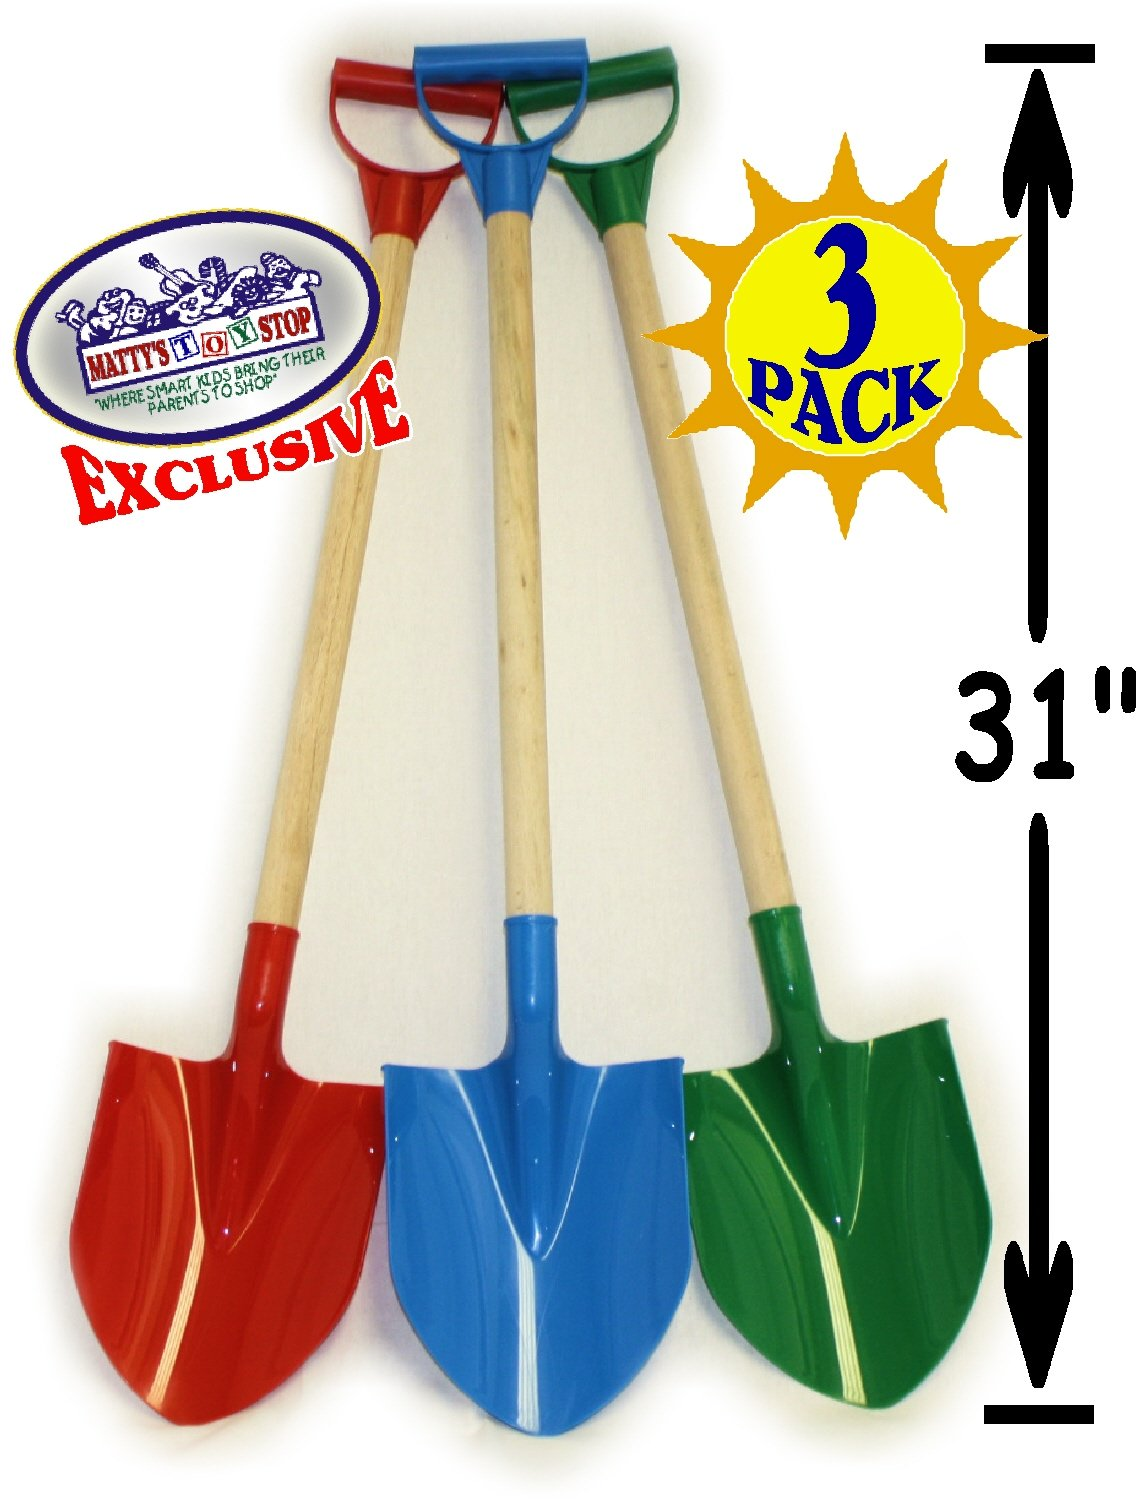 Matty's Toy Stop 31'' Heavy Duty Wooden Kids Sand Shovels with Plastic Spade & Handle (Red, Blue & Green) Complete Gift Set Bundle - 3 Pack